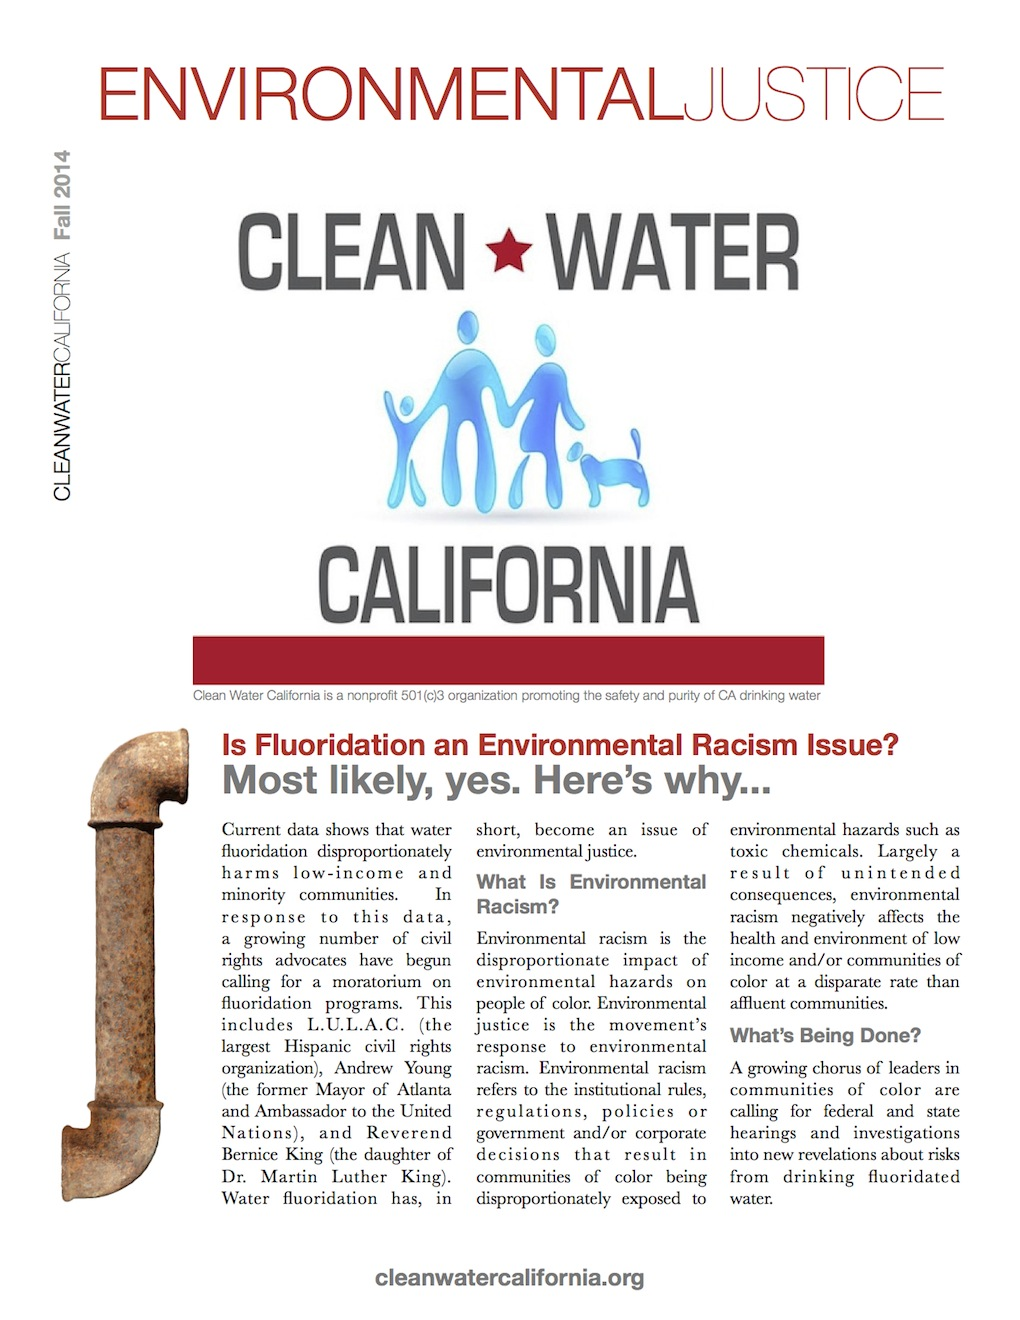 clean, water, california, fluoridation, fluoride, san francisco, environmental justice, environmental racism